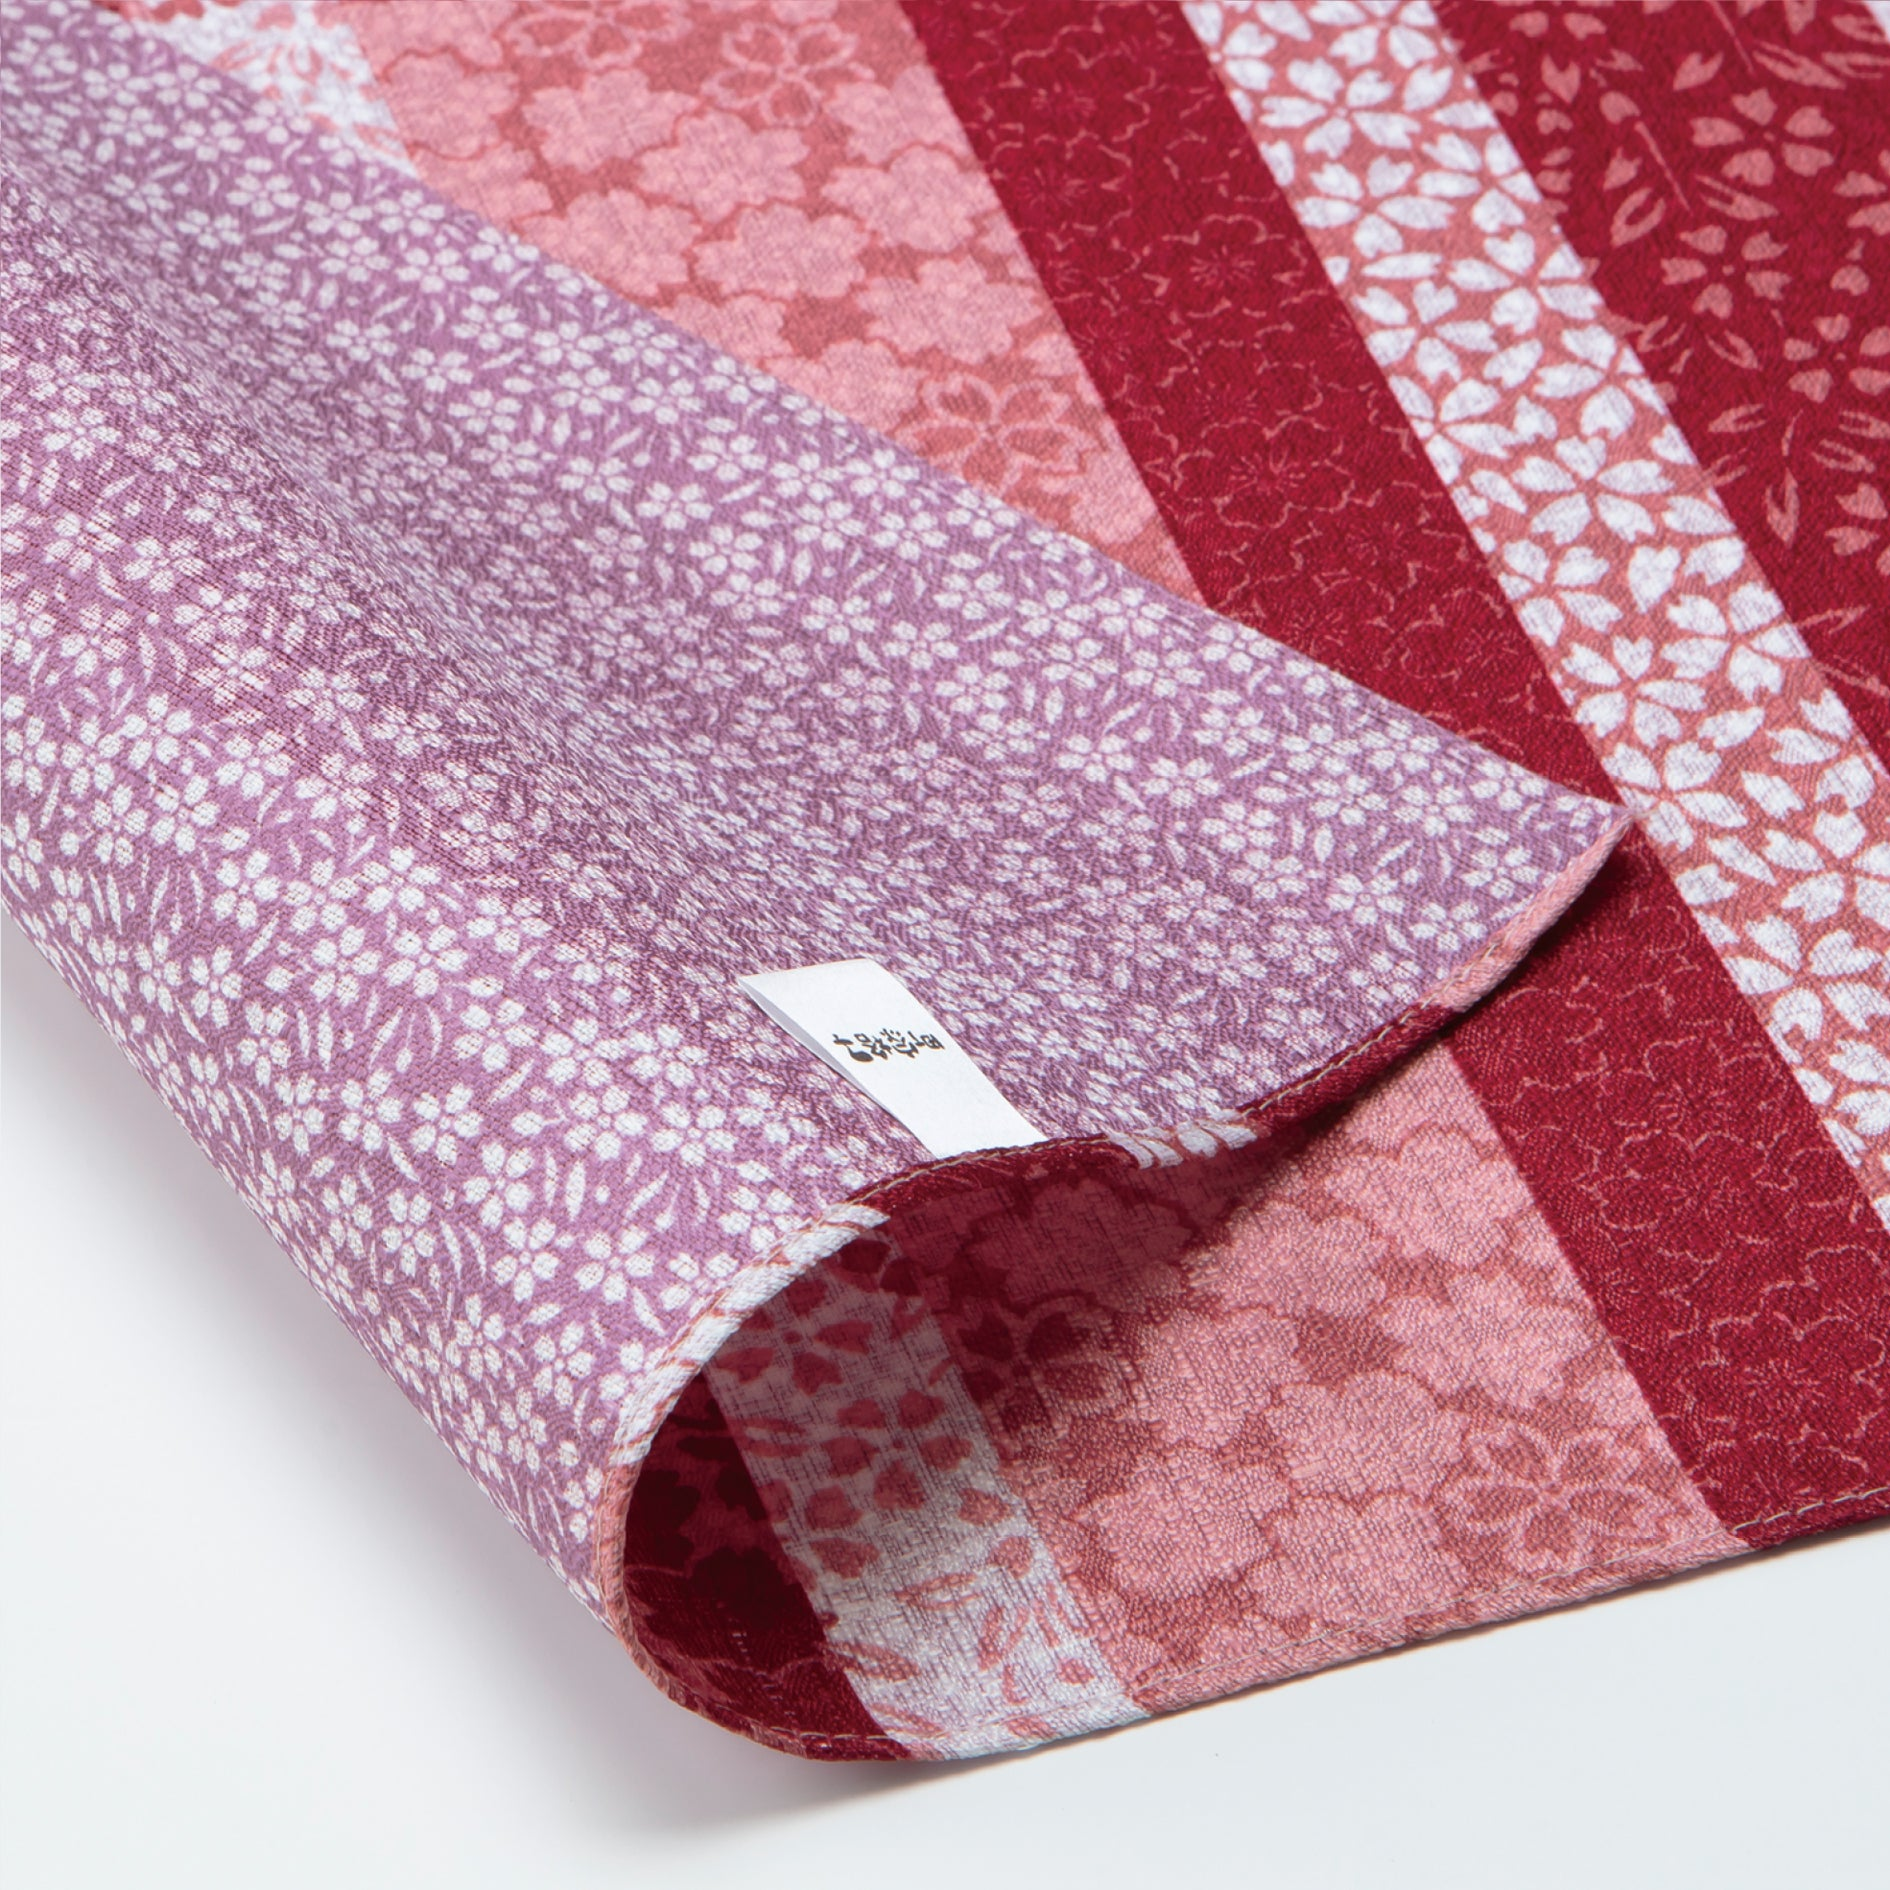 Double Sided Furoshiki Wrapping Cloth | Sakura Stripes Red & Pink